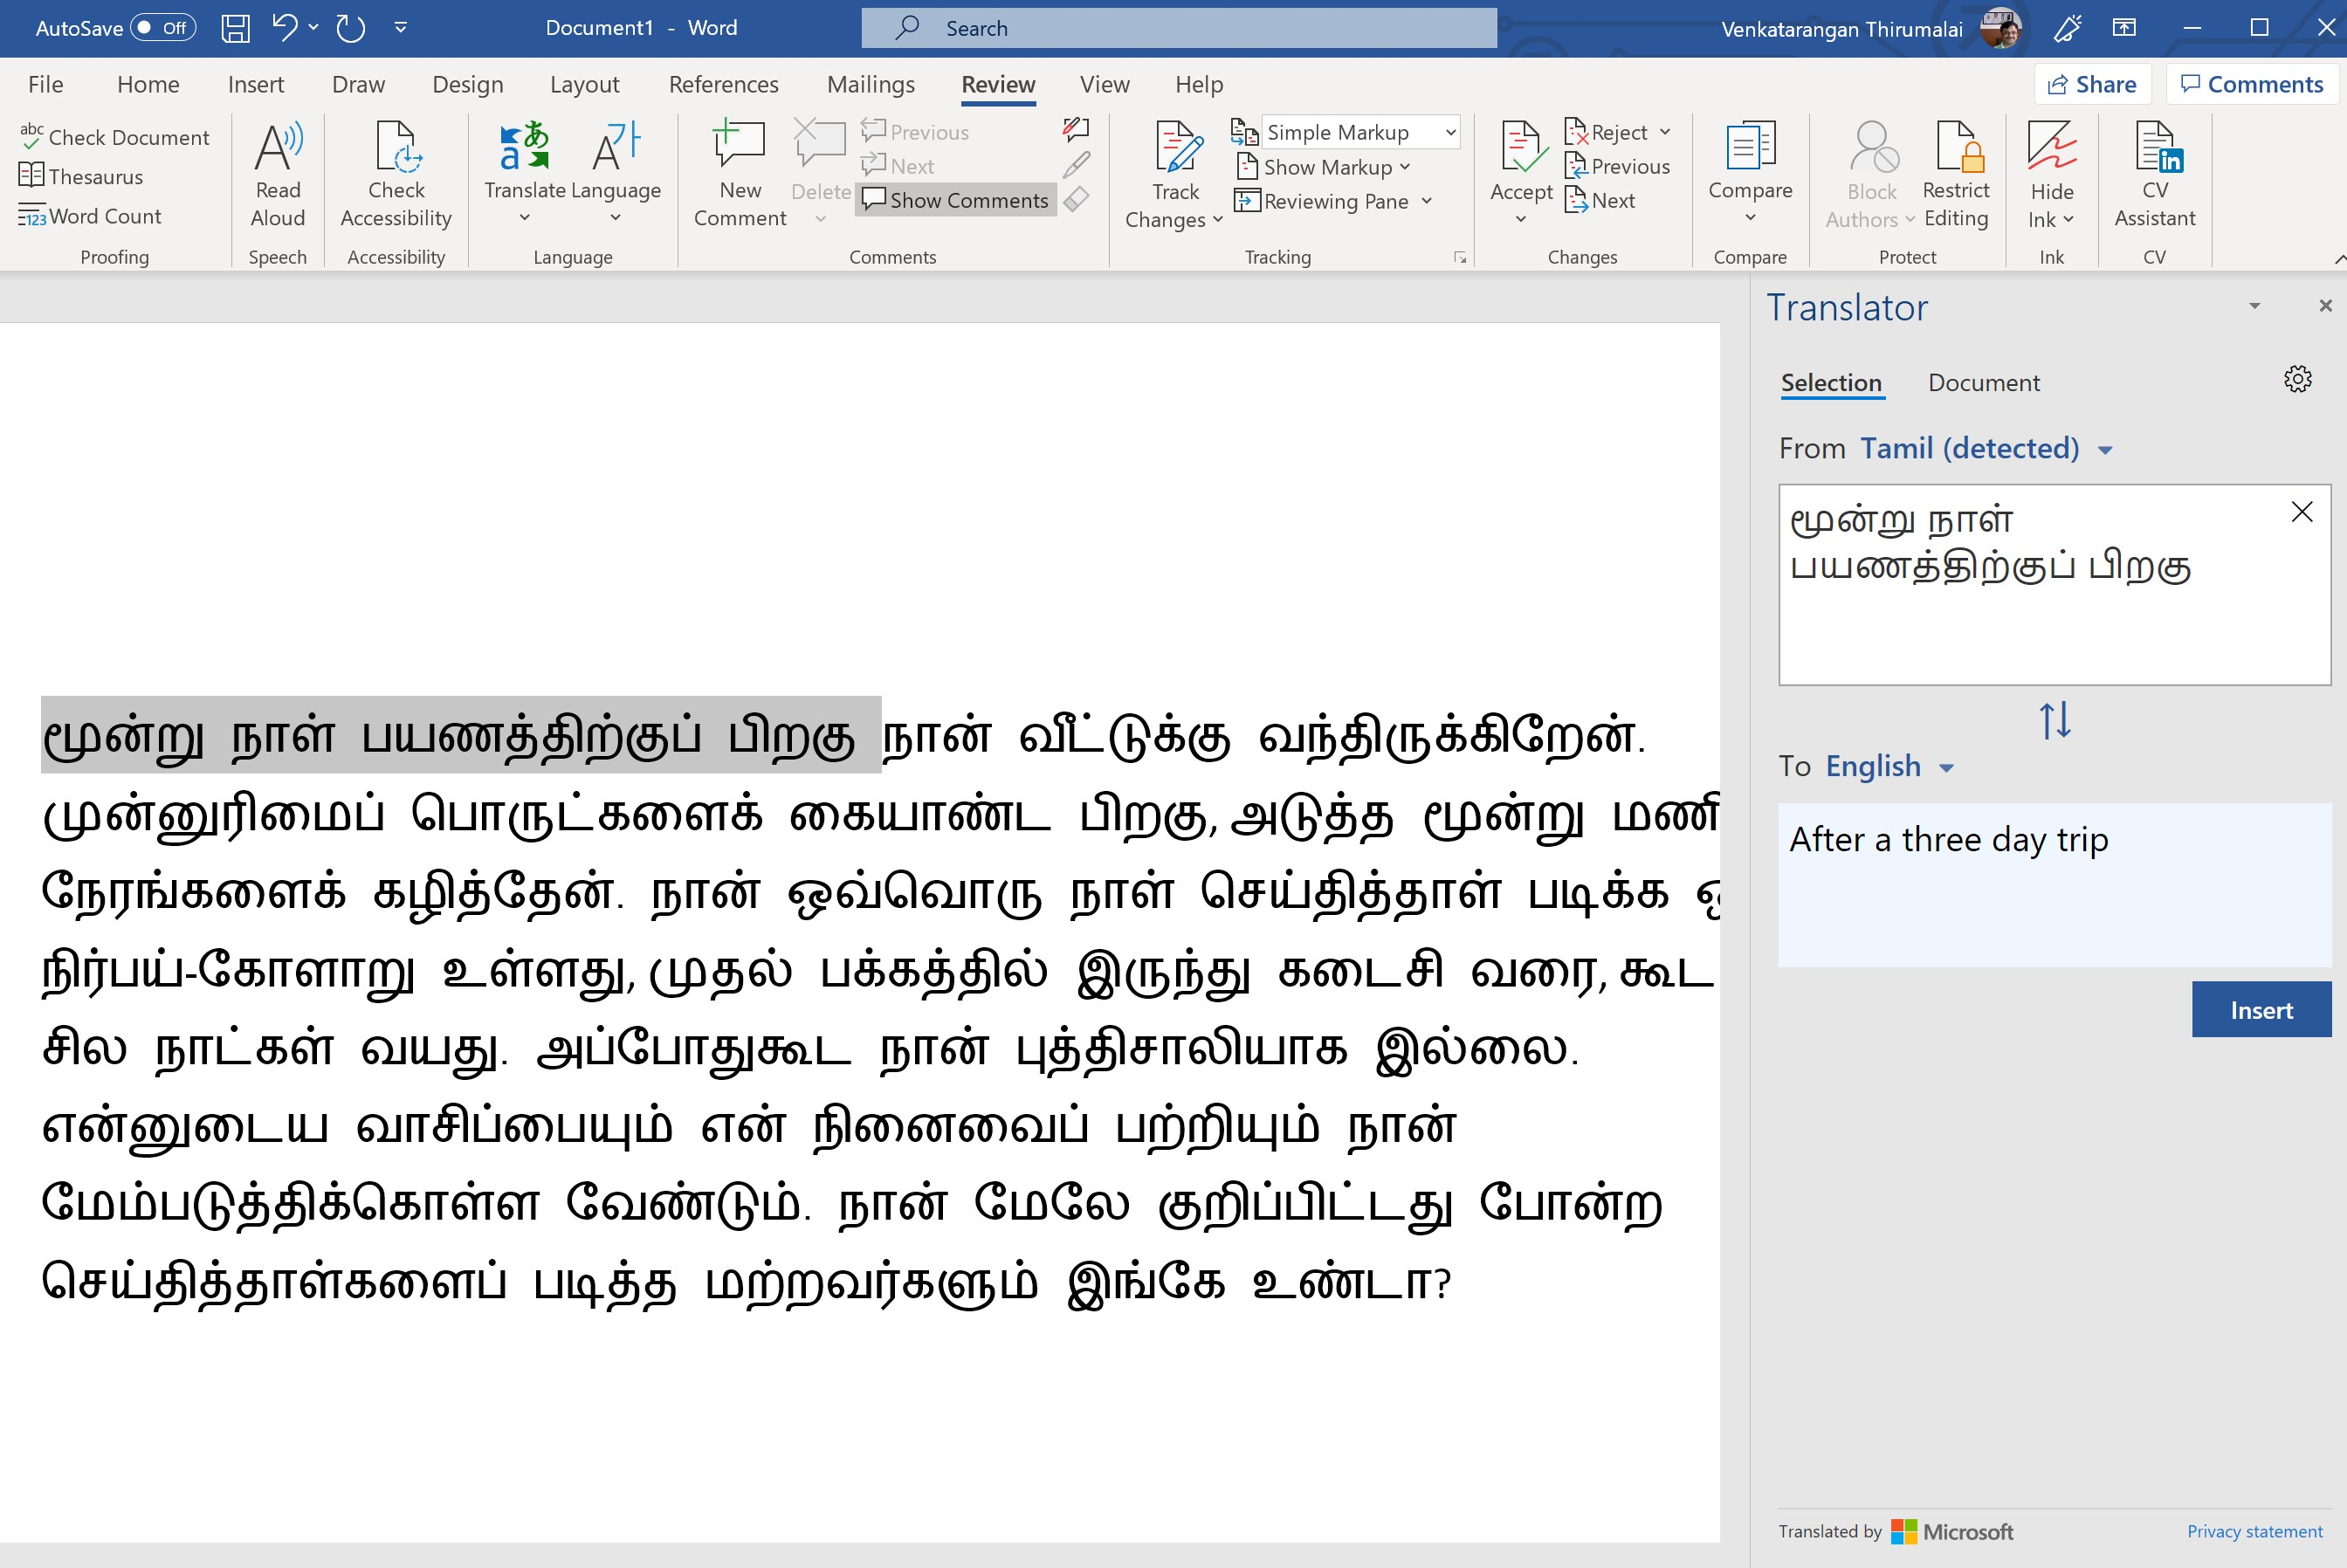 You can translate sentences or the whole document in Microsoft Word from Tamil to English (or) vice-versa